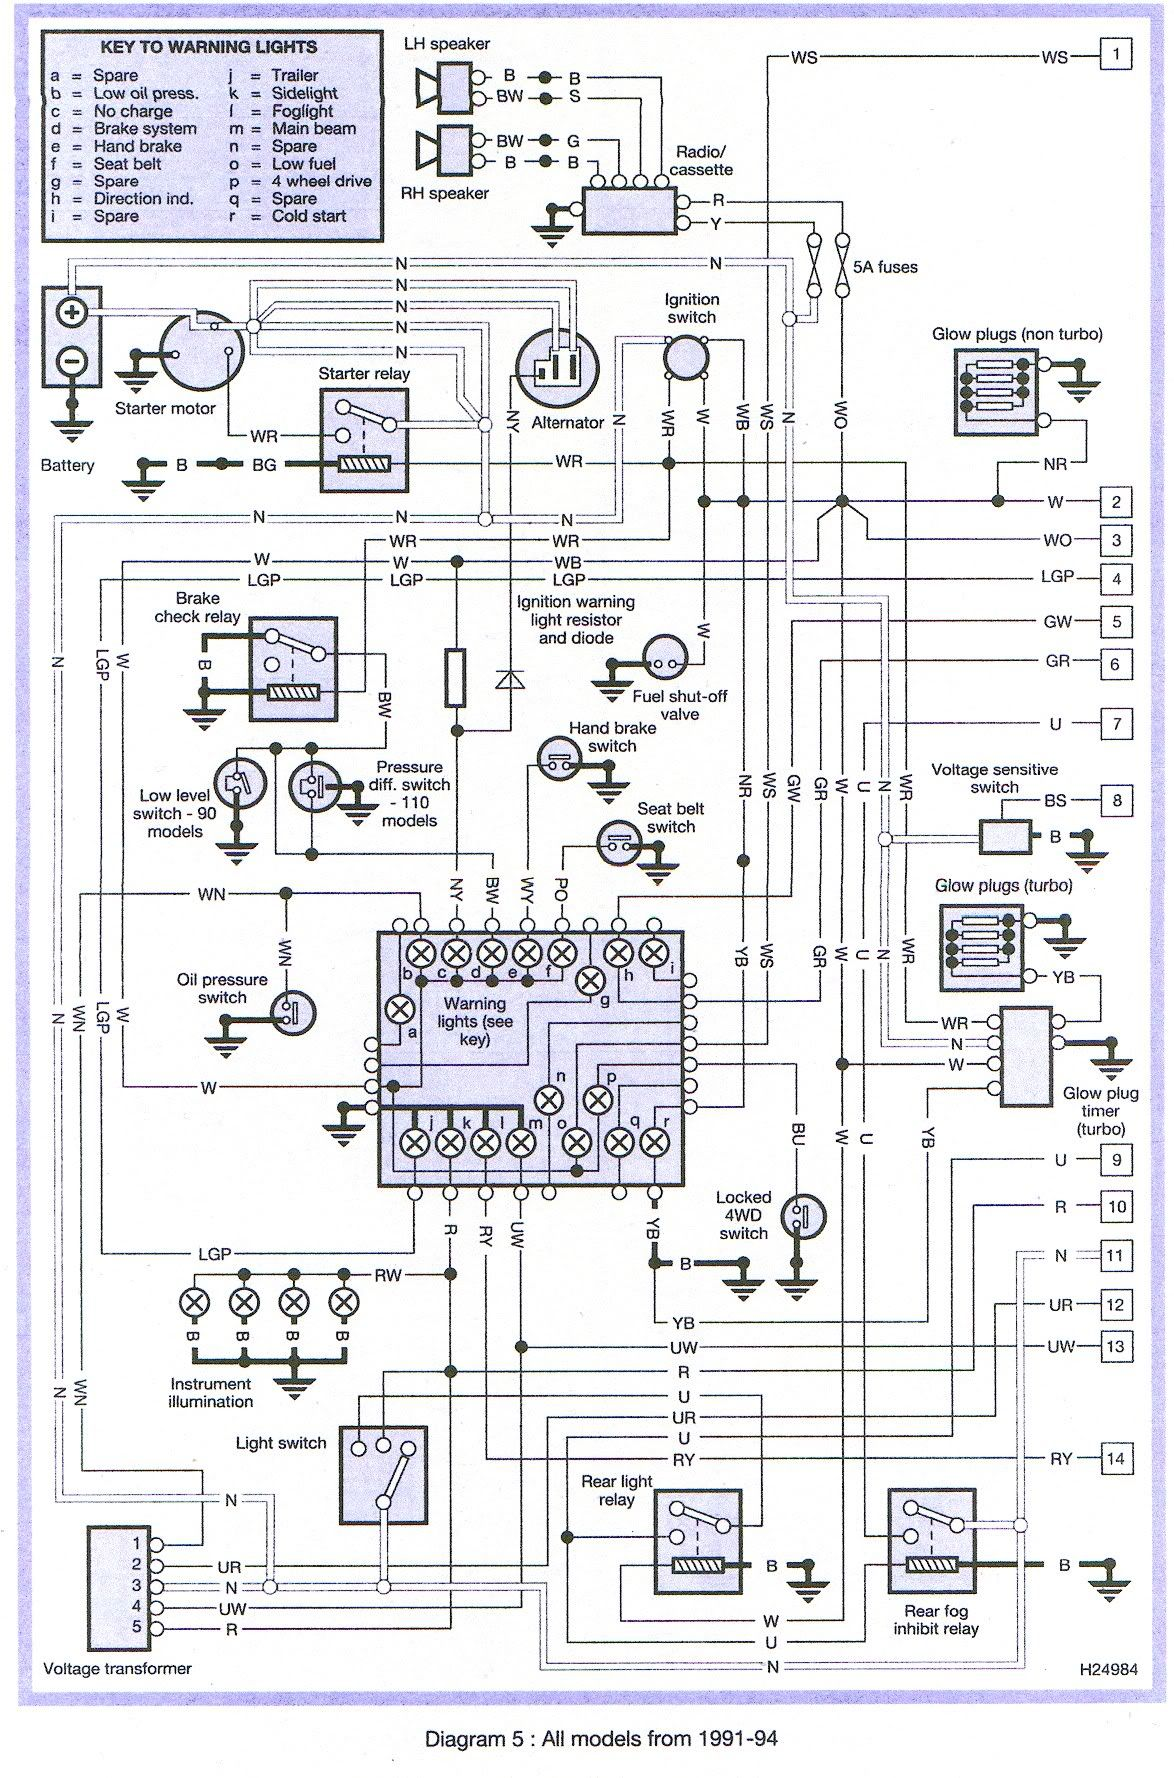 07629544bfff38ad2881b2c21312c6e6 land rover discovery wiring diagram manual repair with engine 2006 range rover sport wiring diagram at bakdesigns.co